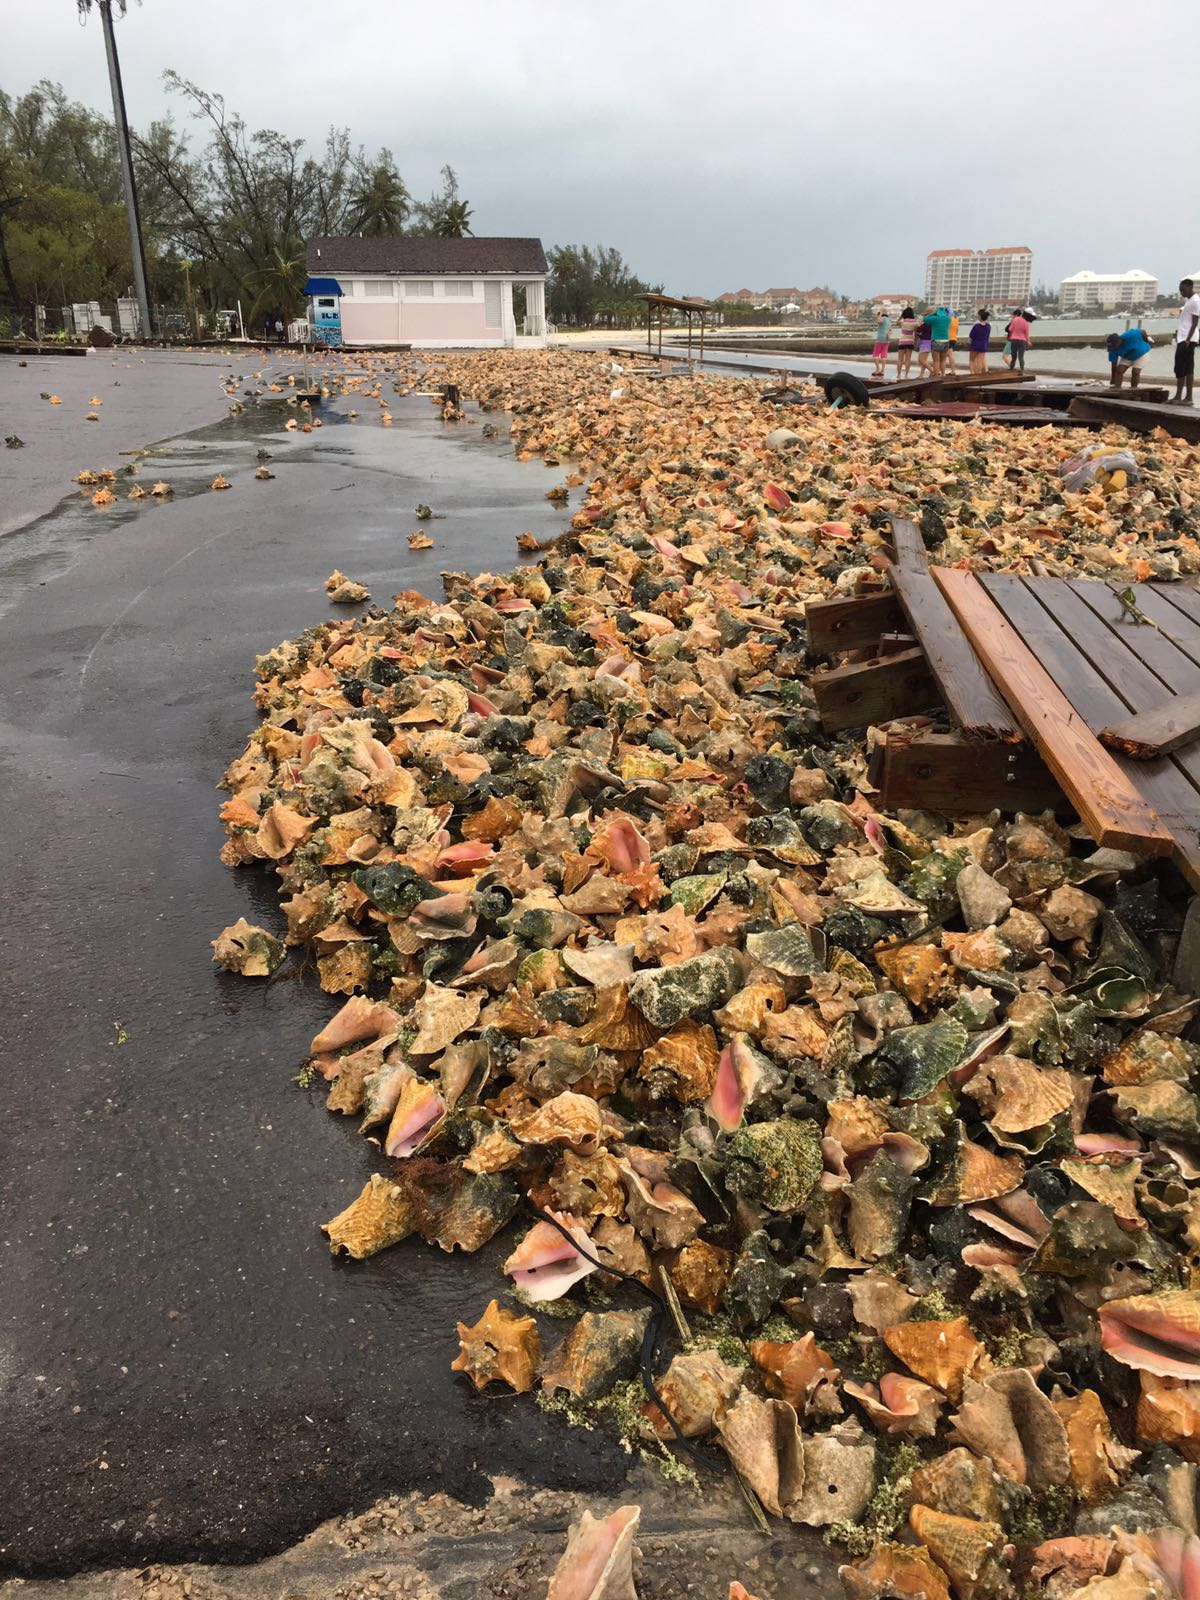 Empty conch shells were washed across a parking lot during Hurricane Matthew in Nassau, New Providence, in the Bahamas yesterday. PHOTO/BRIAN TURNQUEST